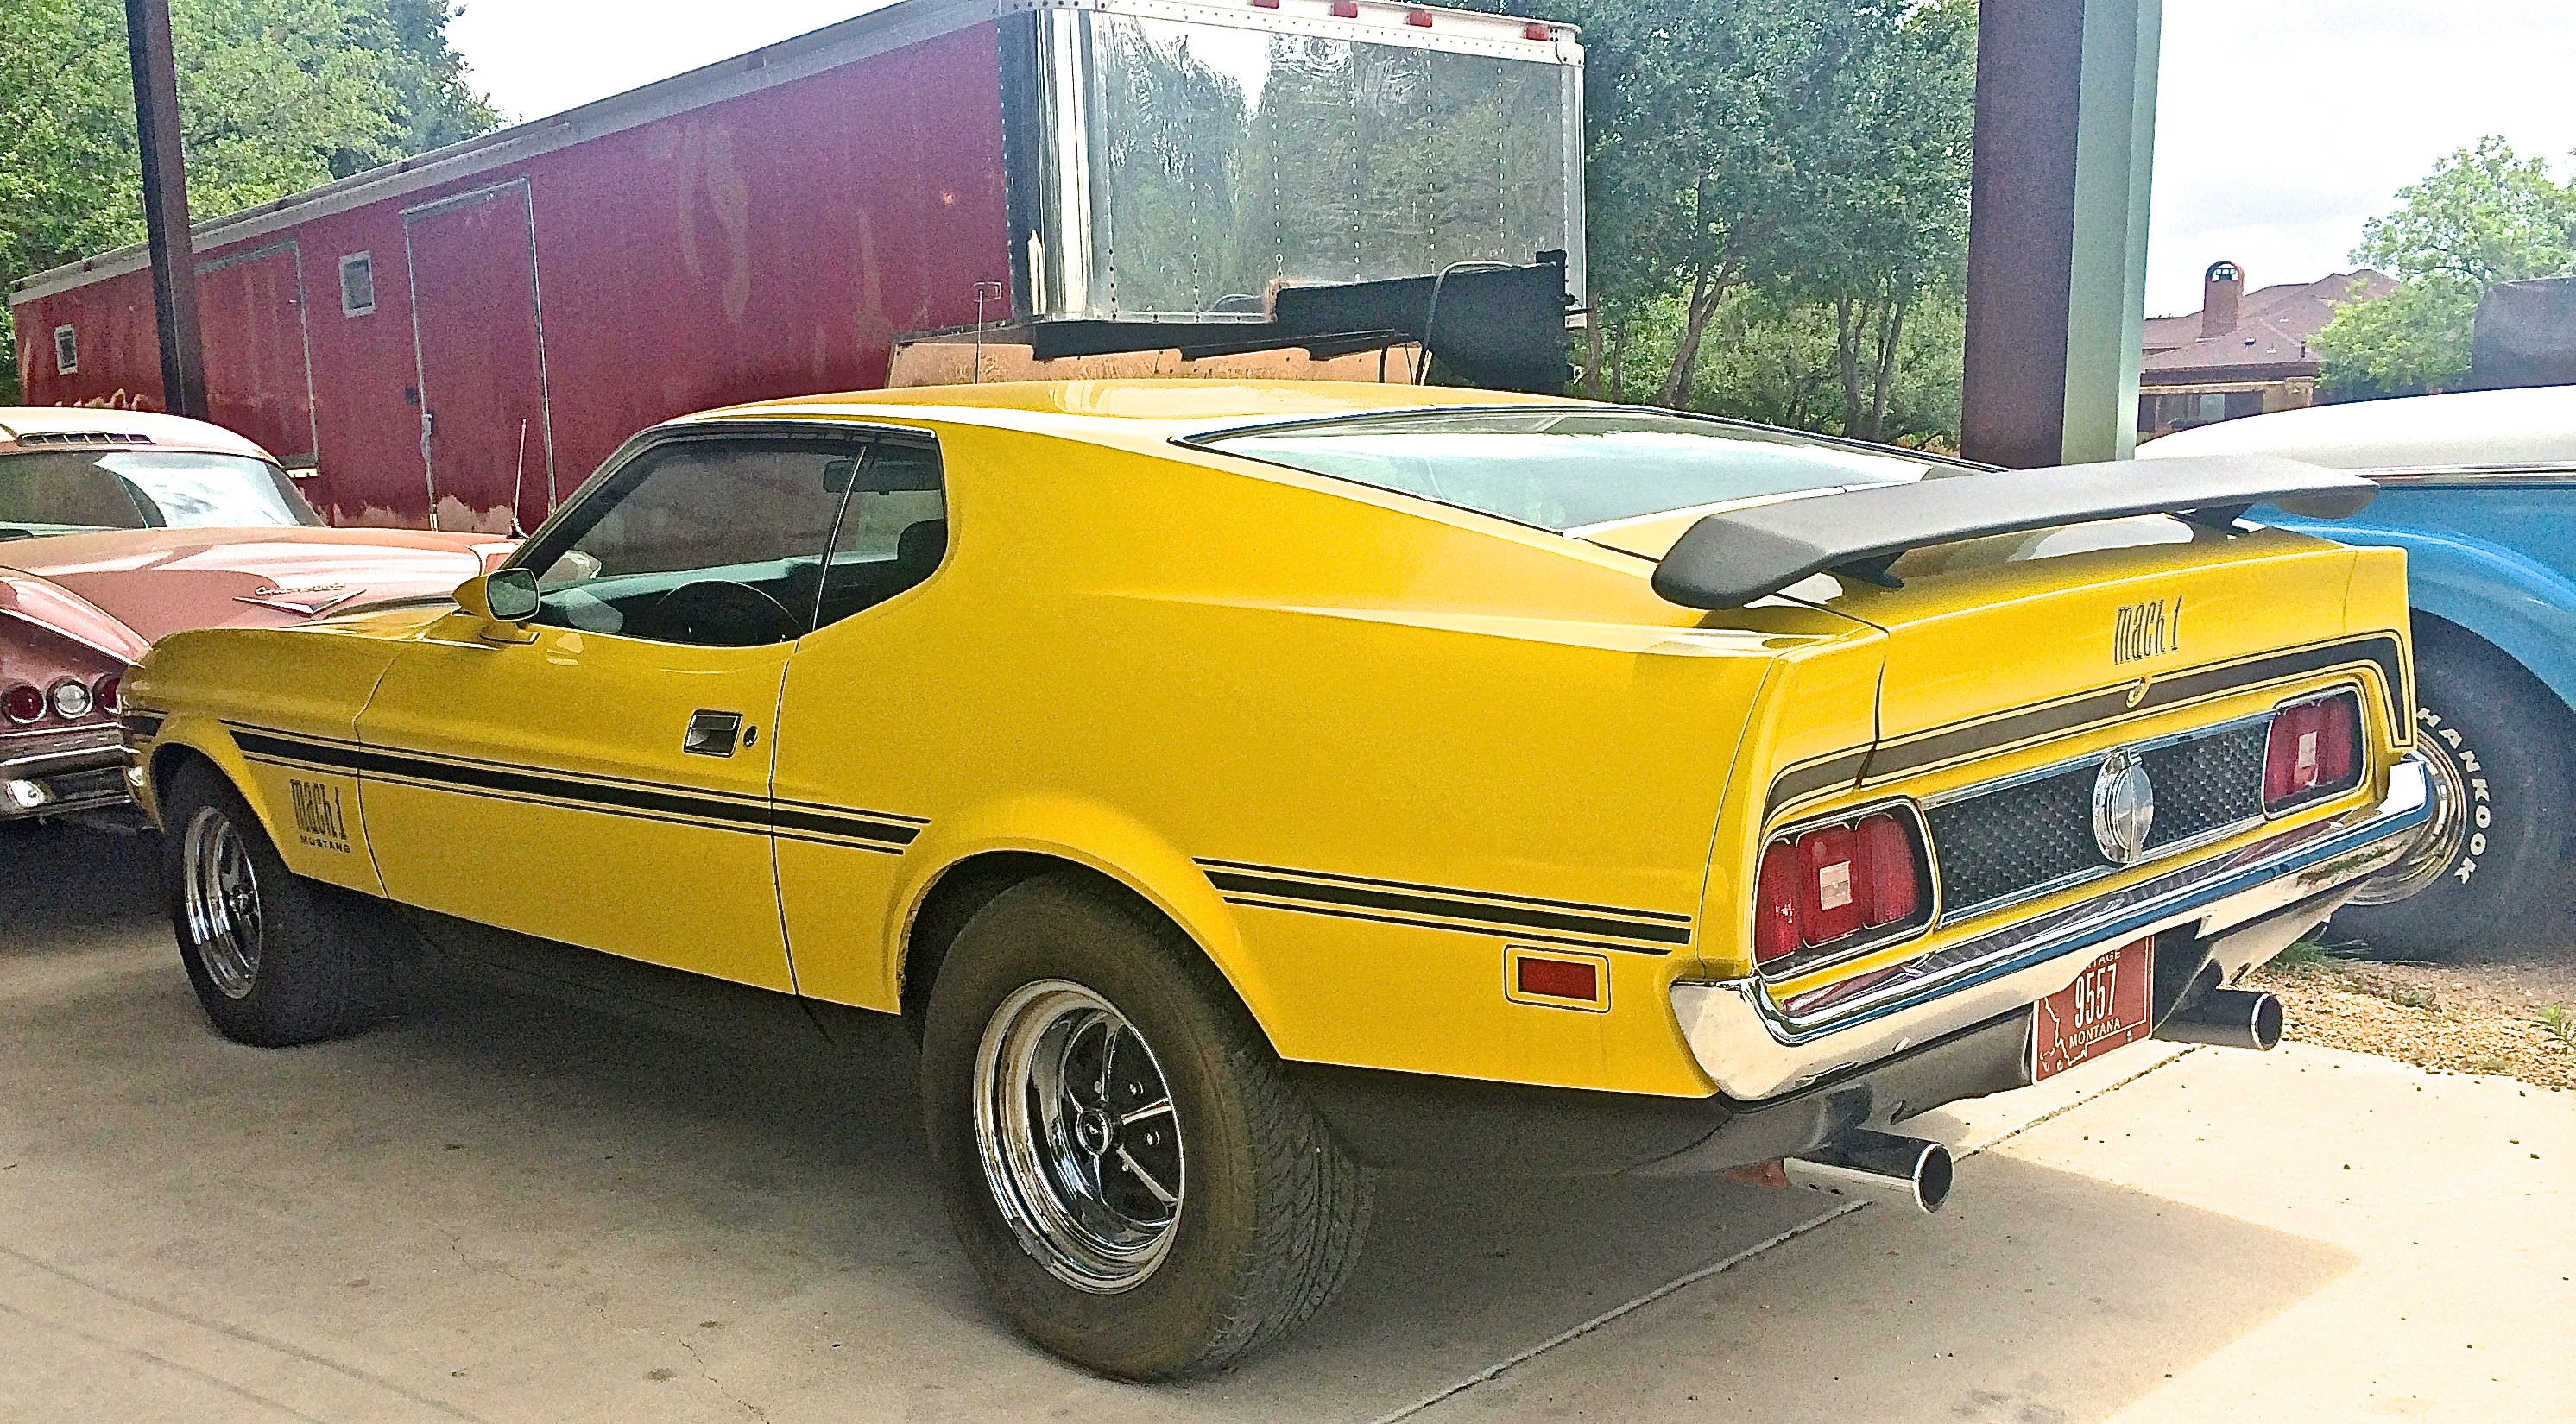 1971 Ford Mustang Mach 1 429 Ram Air For Sale Atx Car Pictures Fastback Larry Smith In Liberty Hill Is Selling This 45900 Along With Many Other Cars As He Reduces His Personal Collection